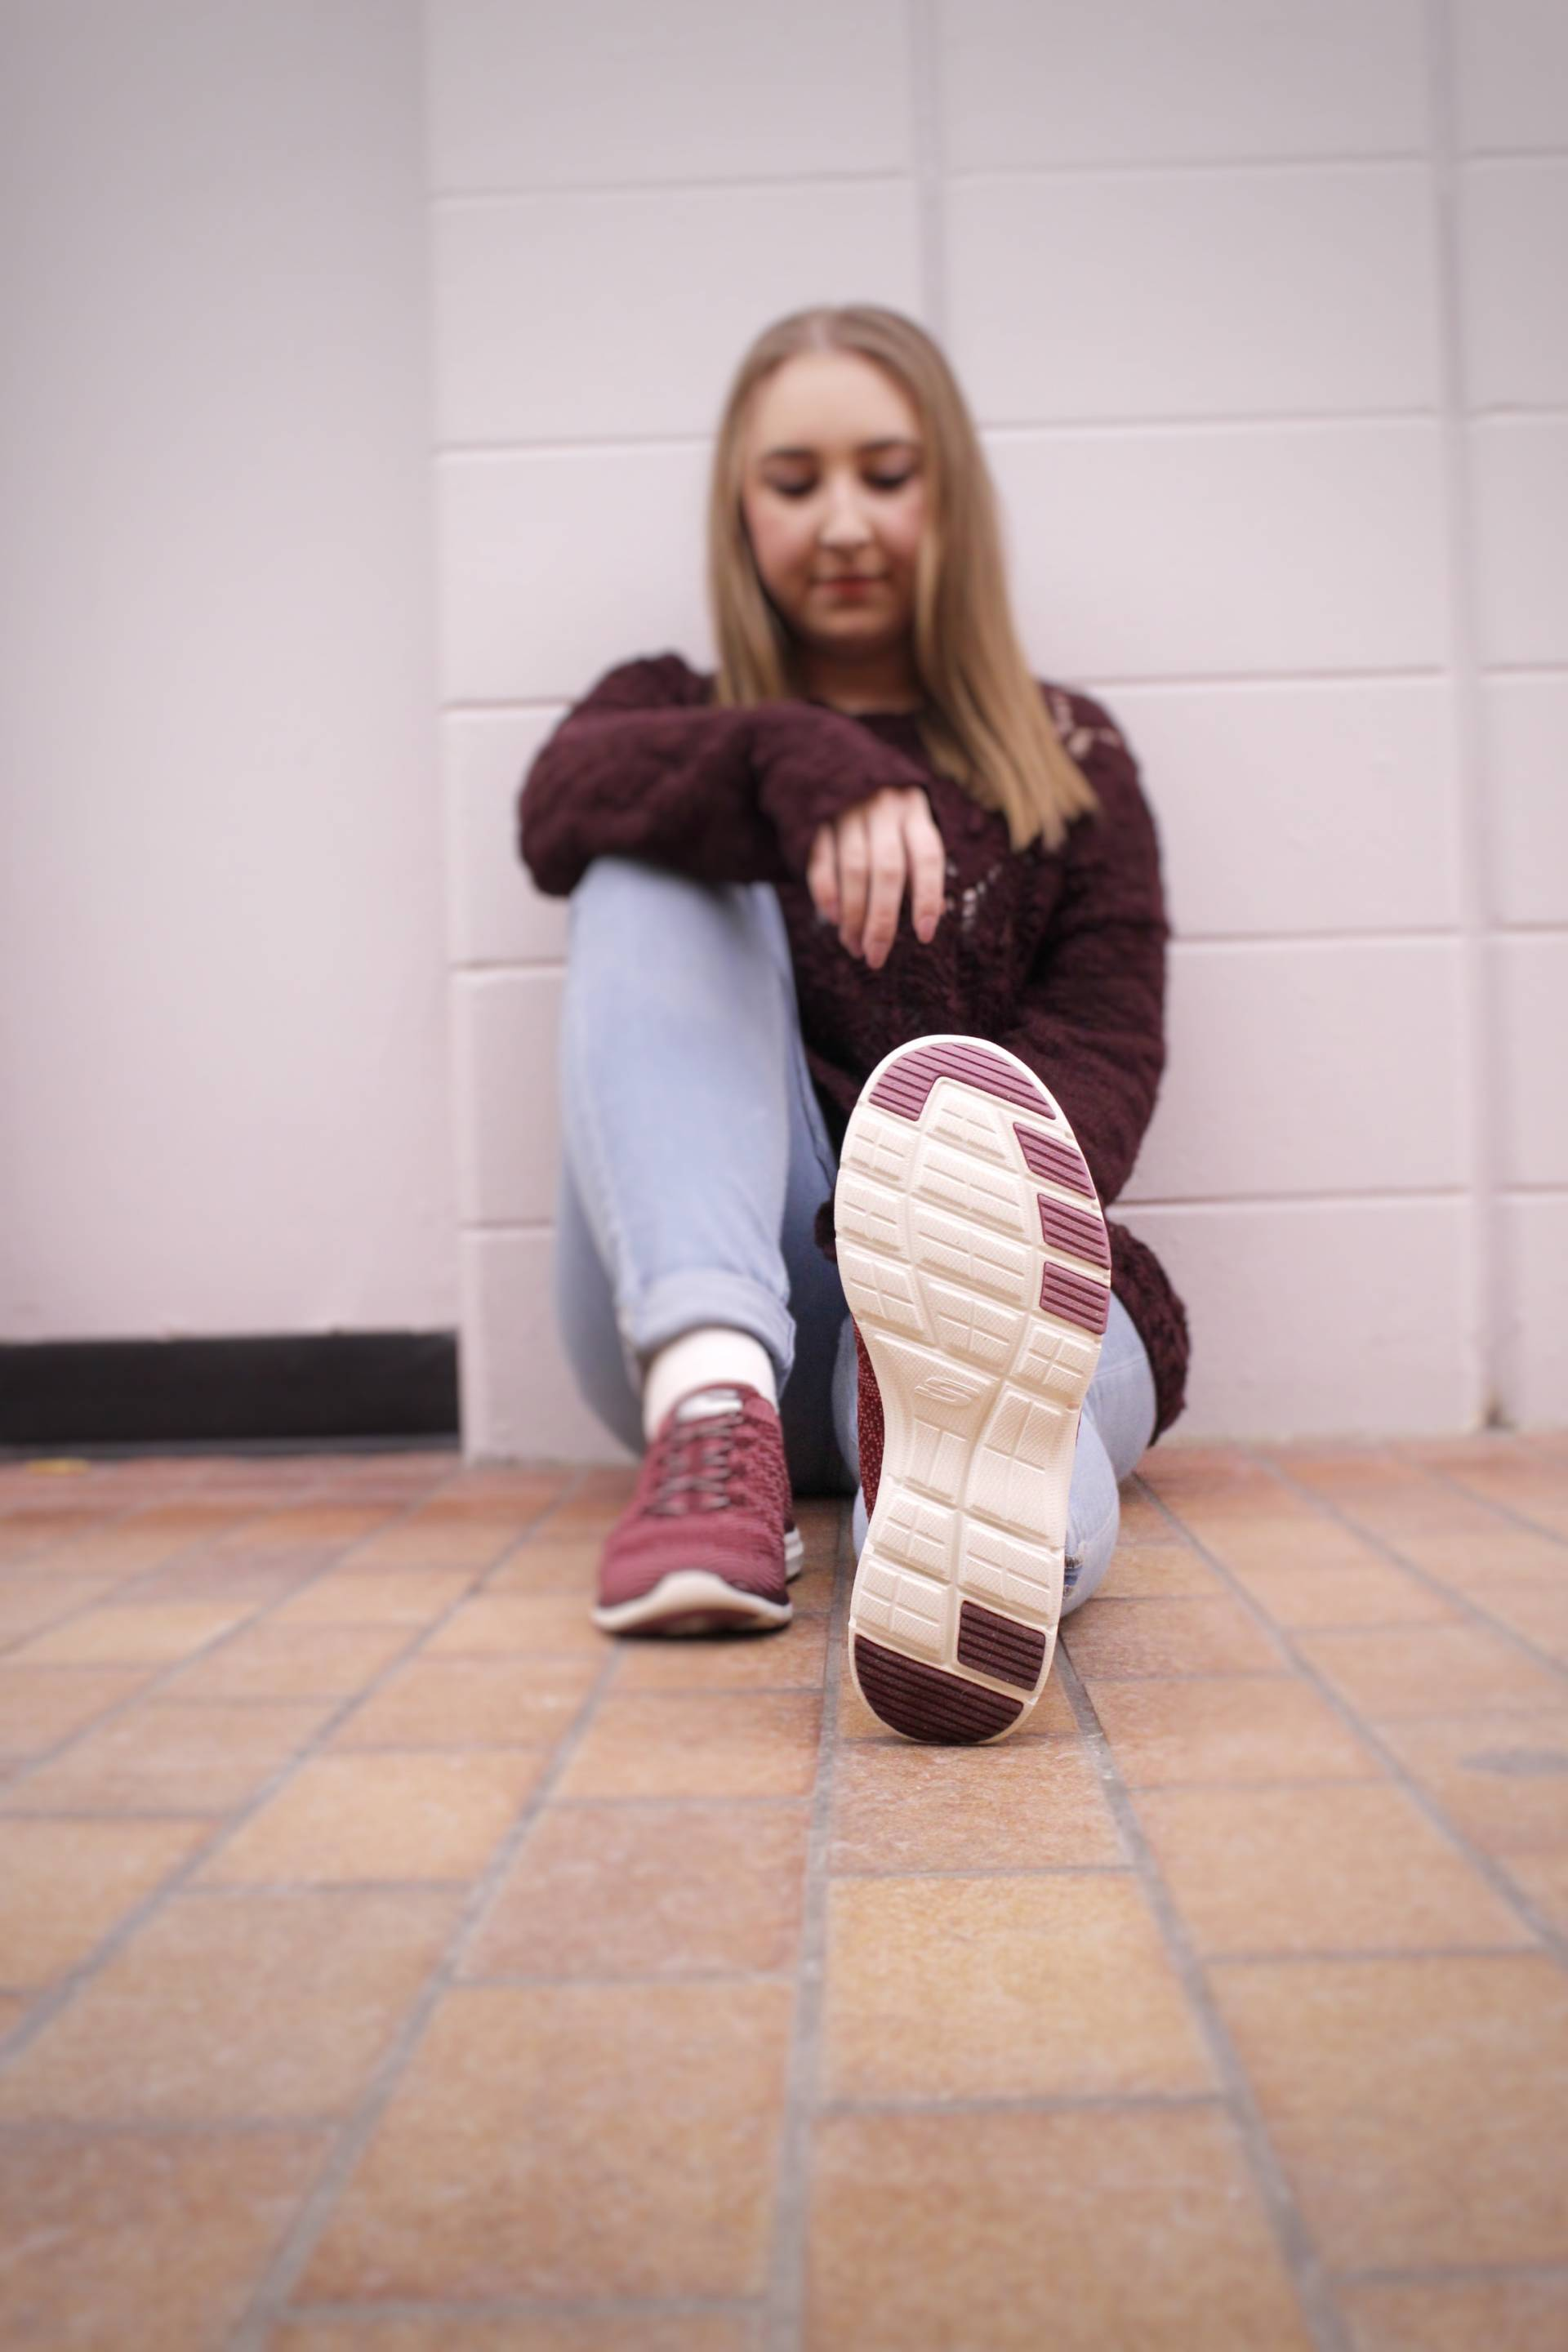 Getting comfy this Valentine's Day w/ Skechers - Pearls and Polkadots